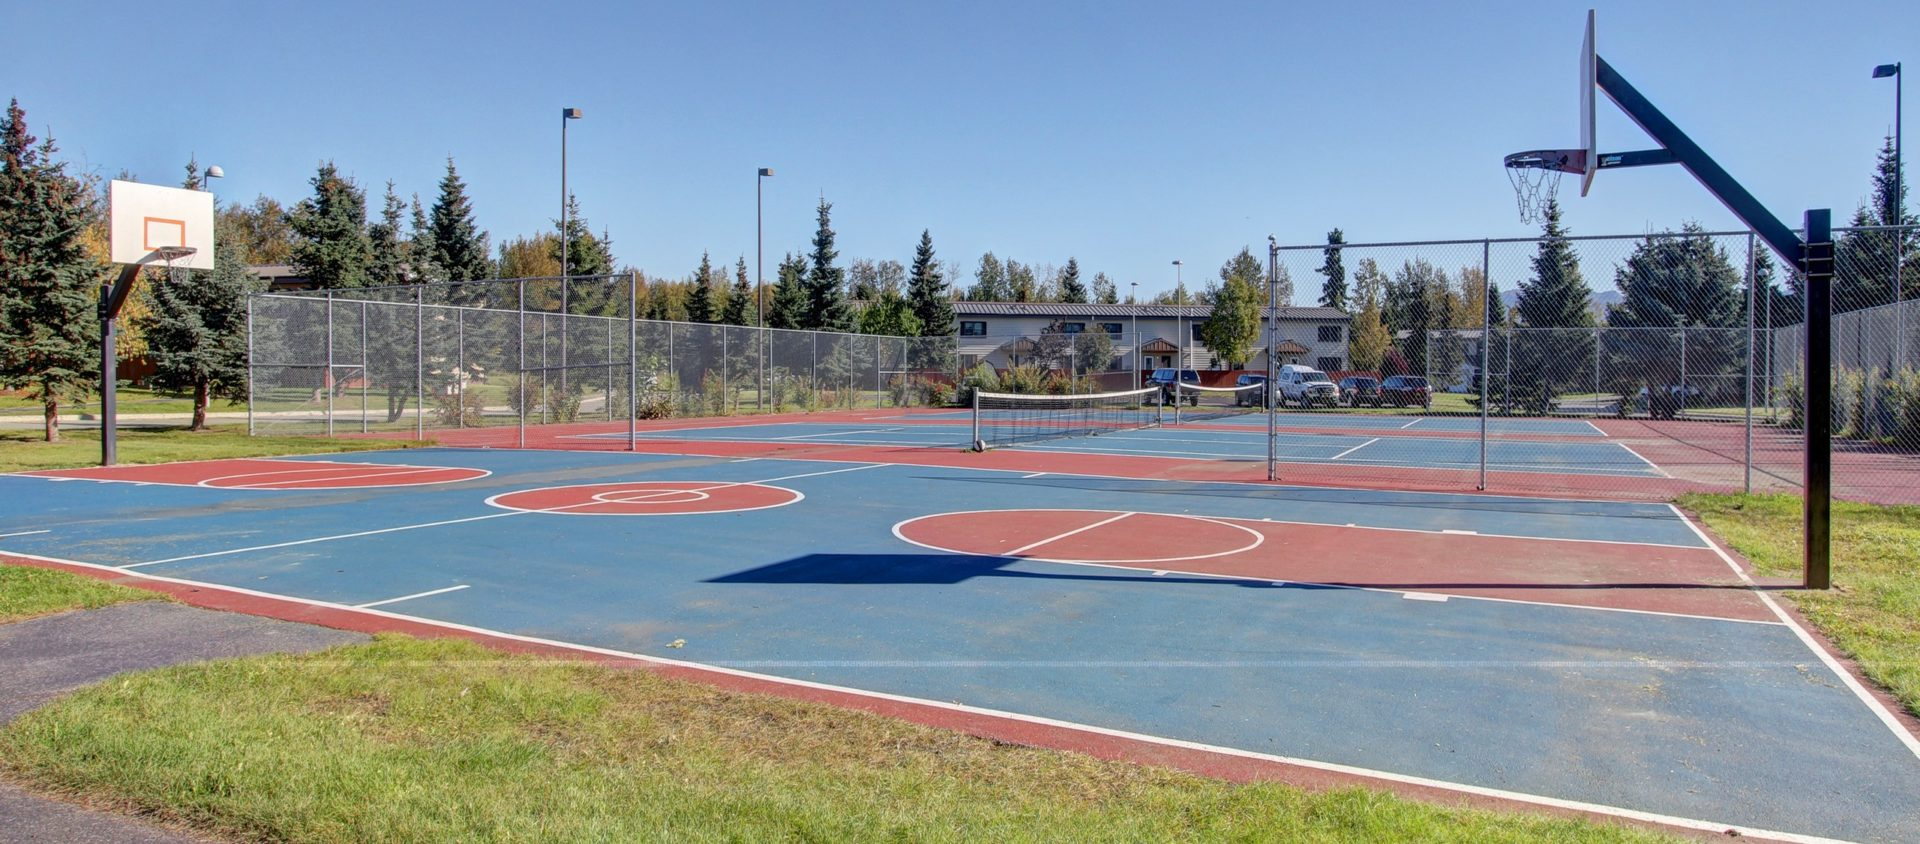 outdoor basketball and and tennis courts at JBER's Cherry Hill neighborhood